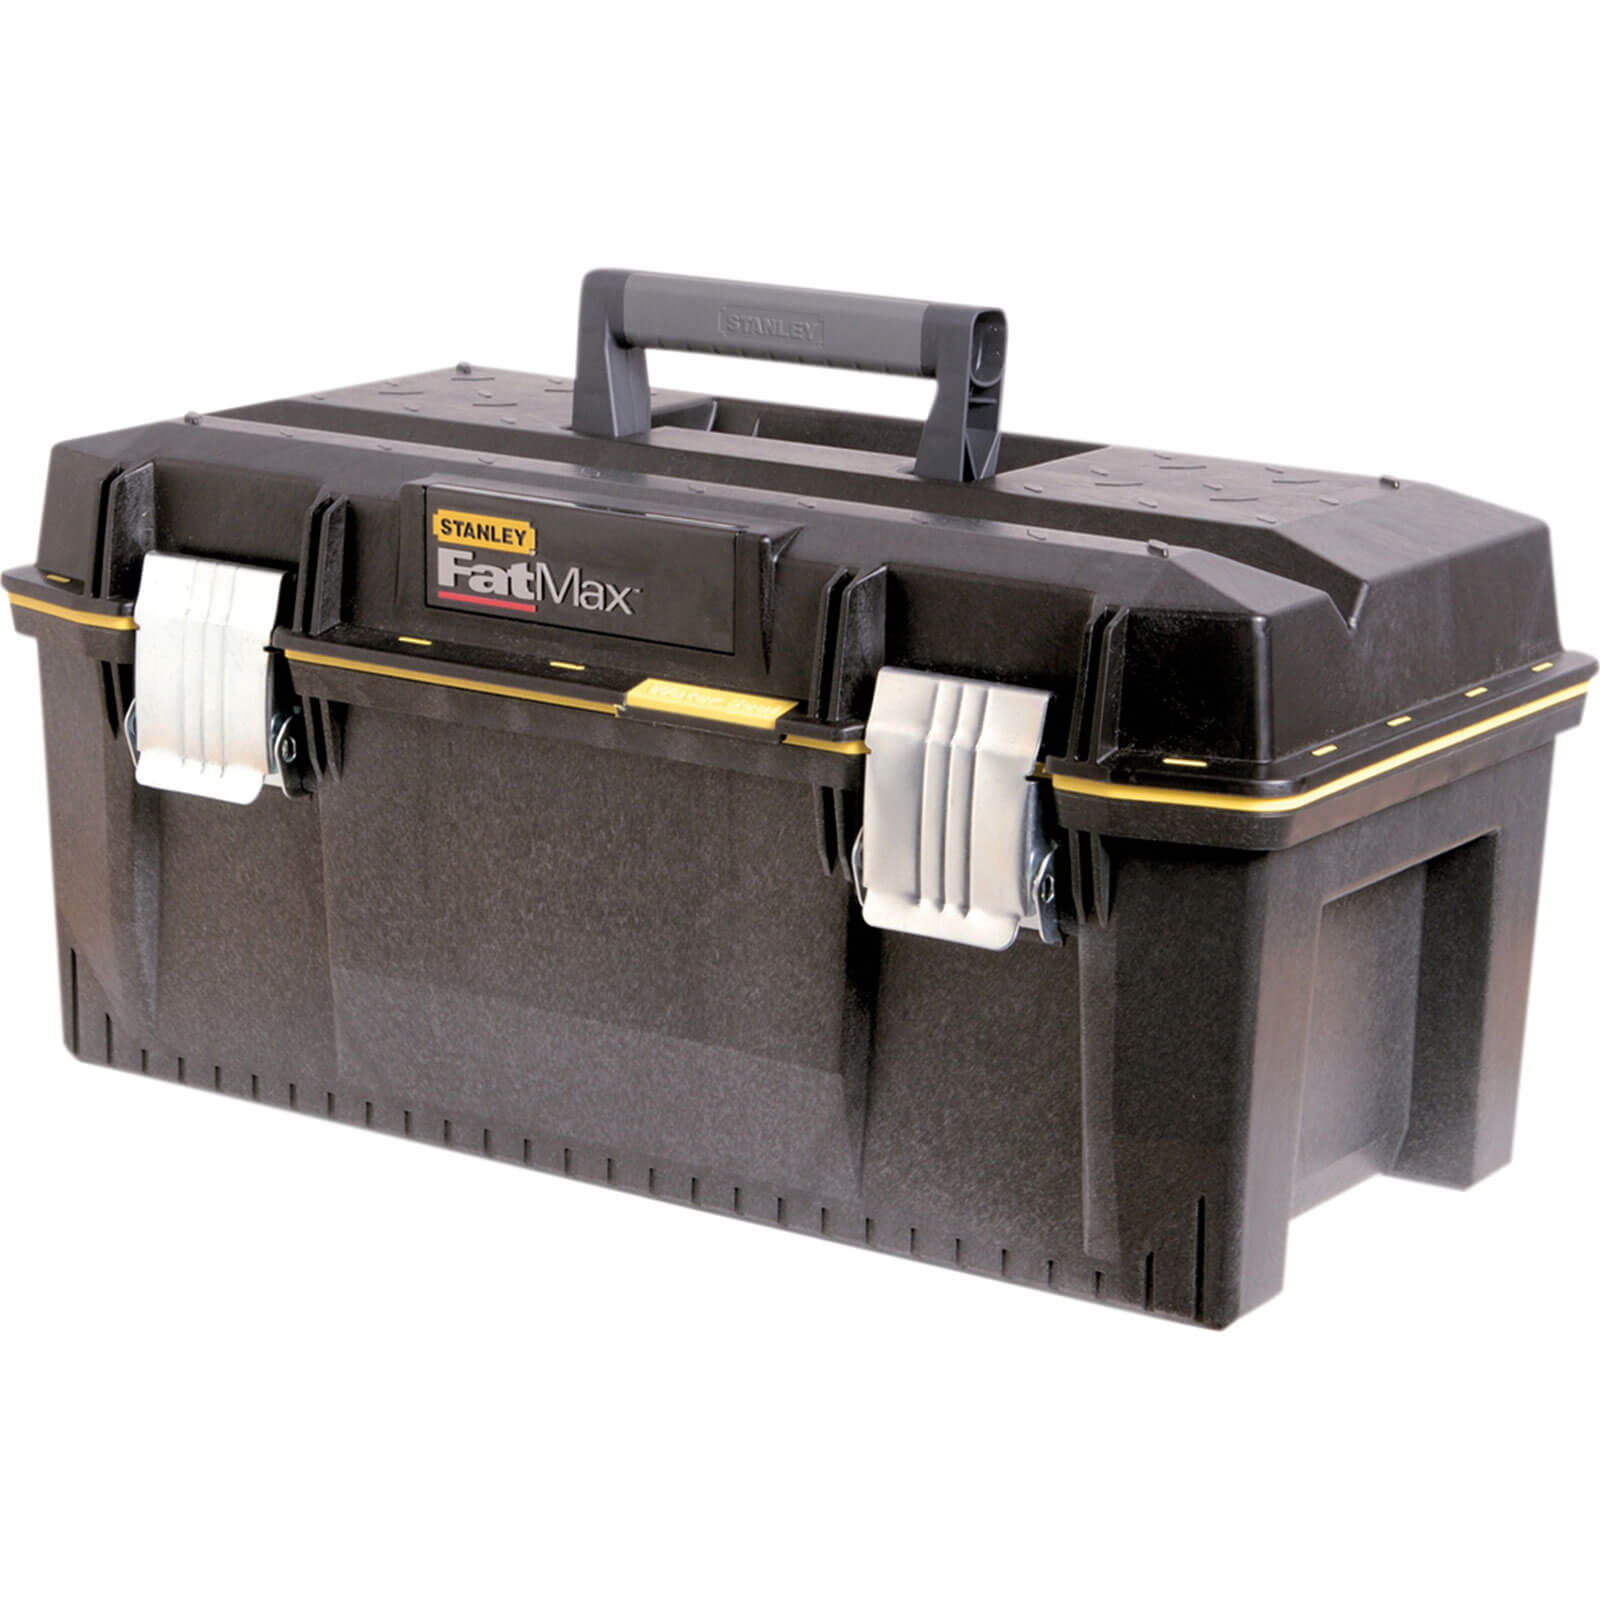 Stanley Fatmax Structural Foam Toolbox Black 583mm / 23